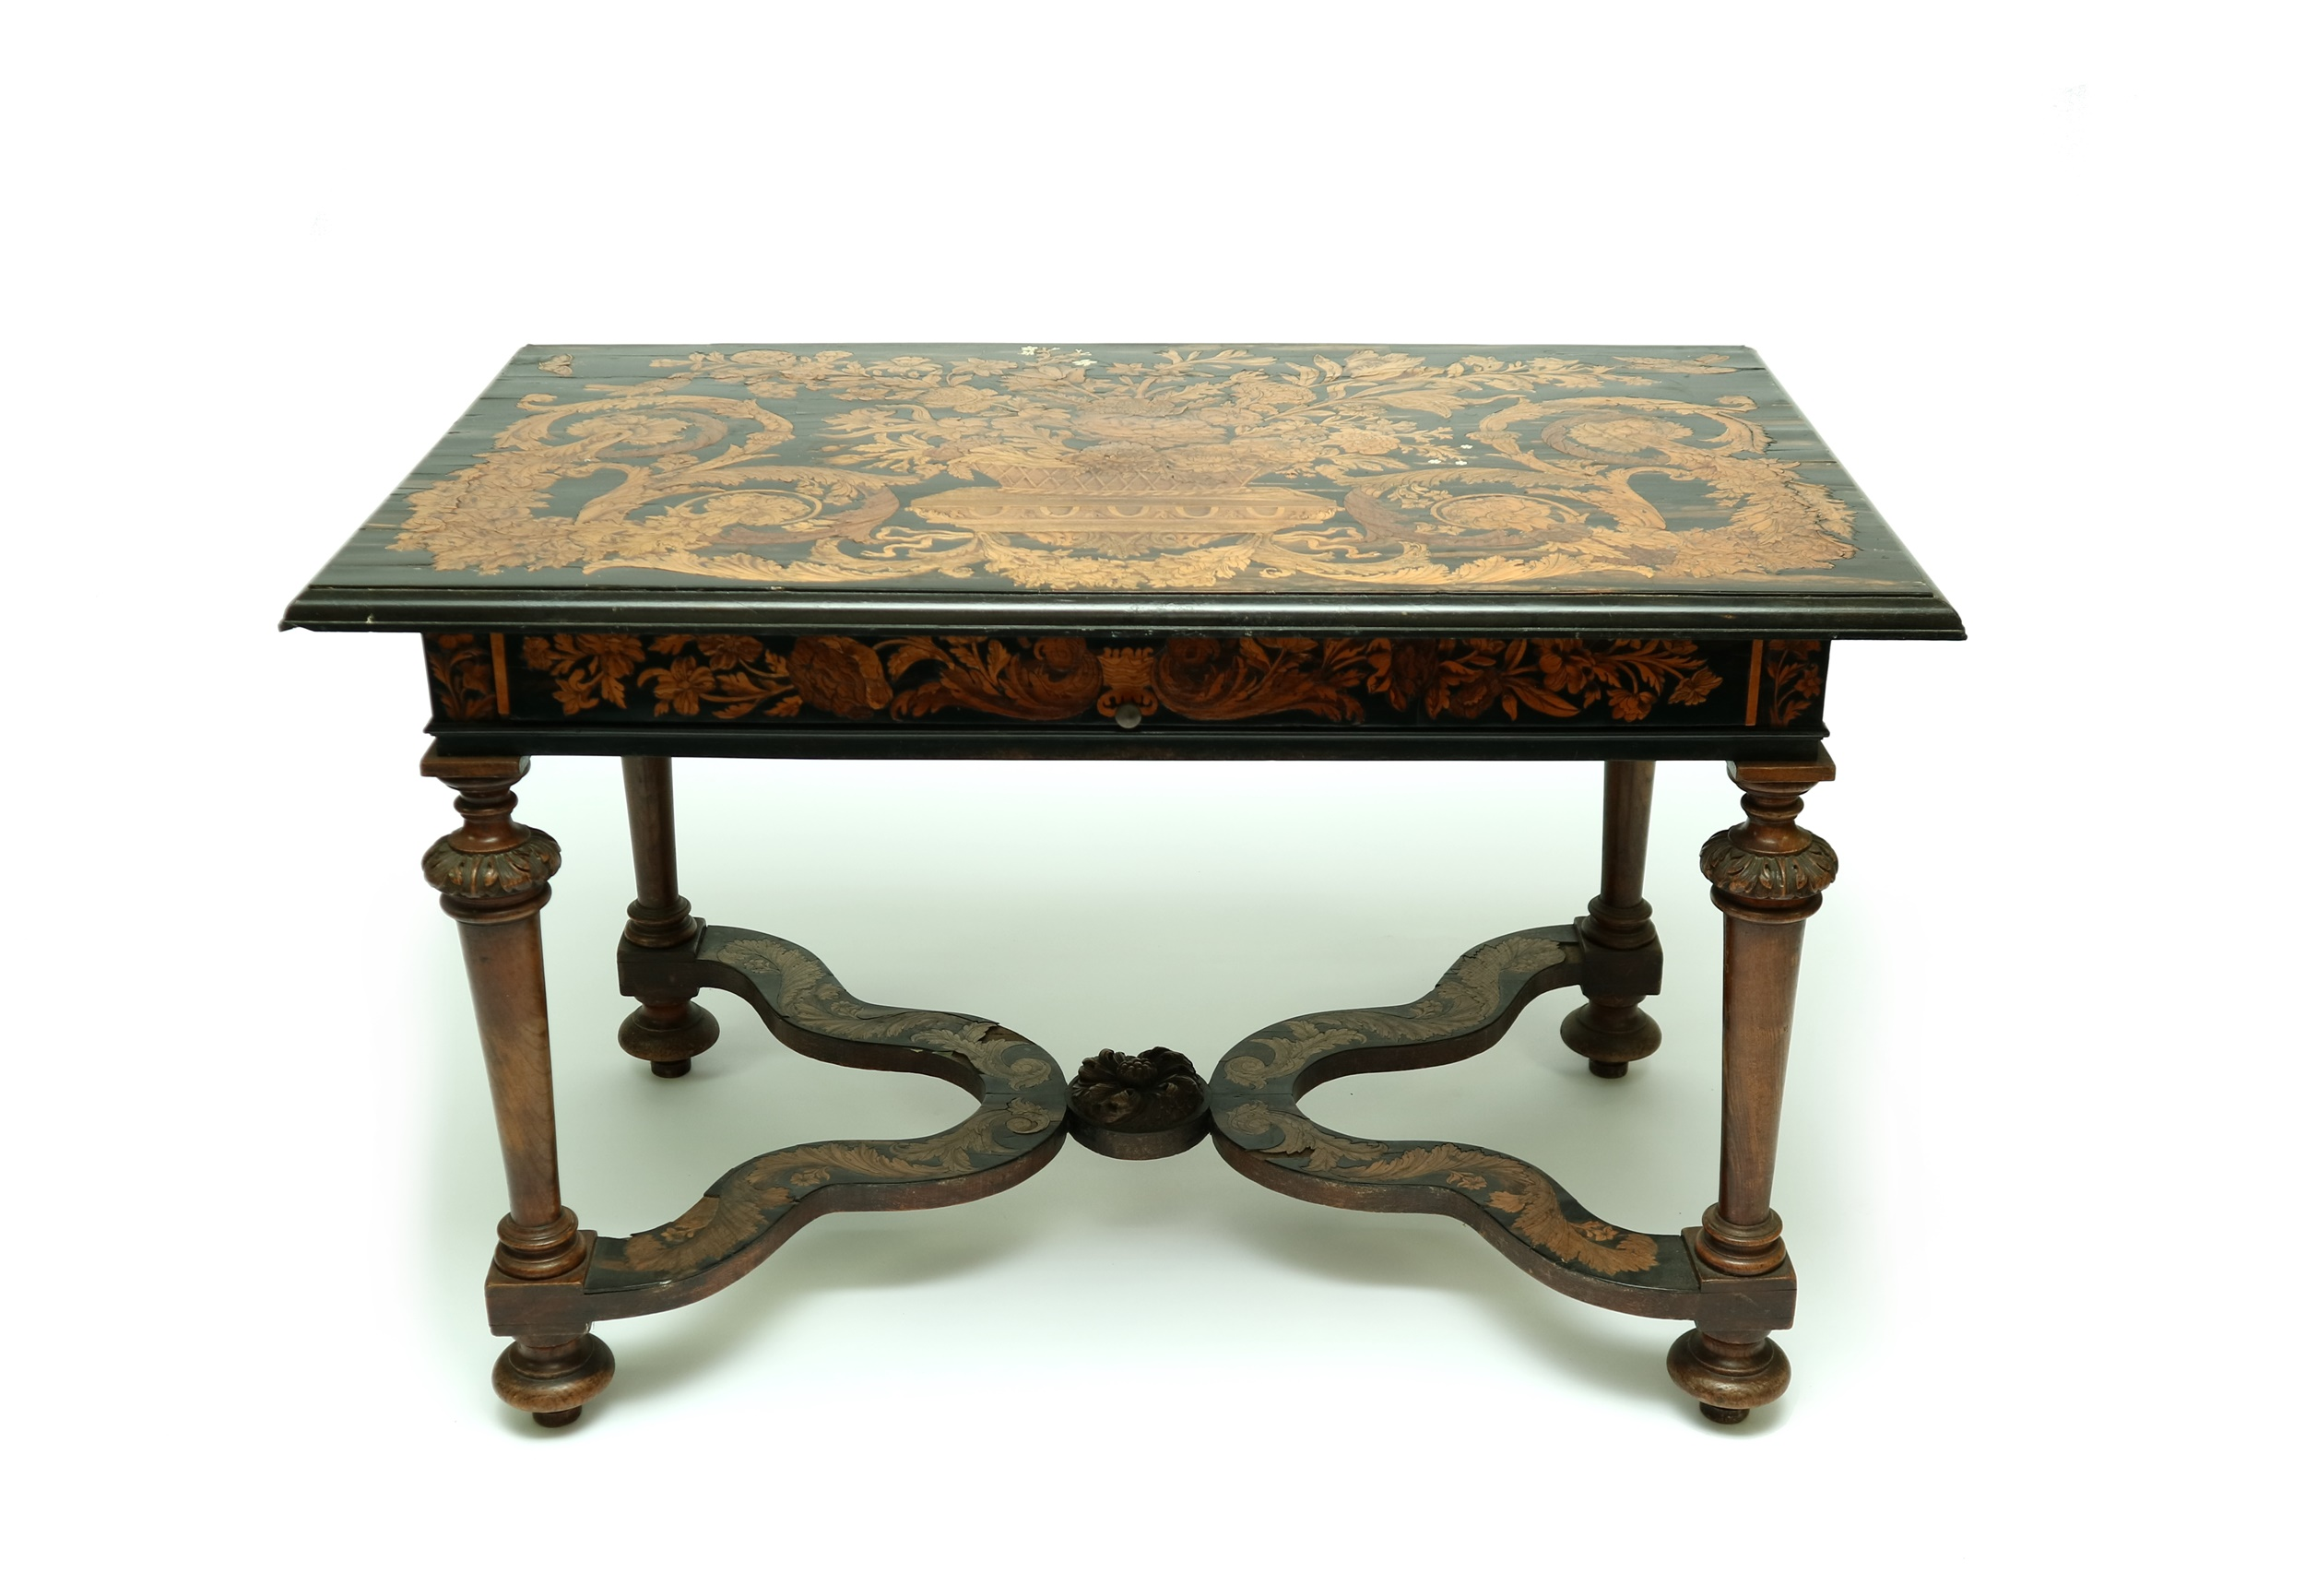 Marquetry inlayed table